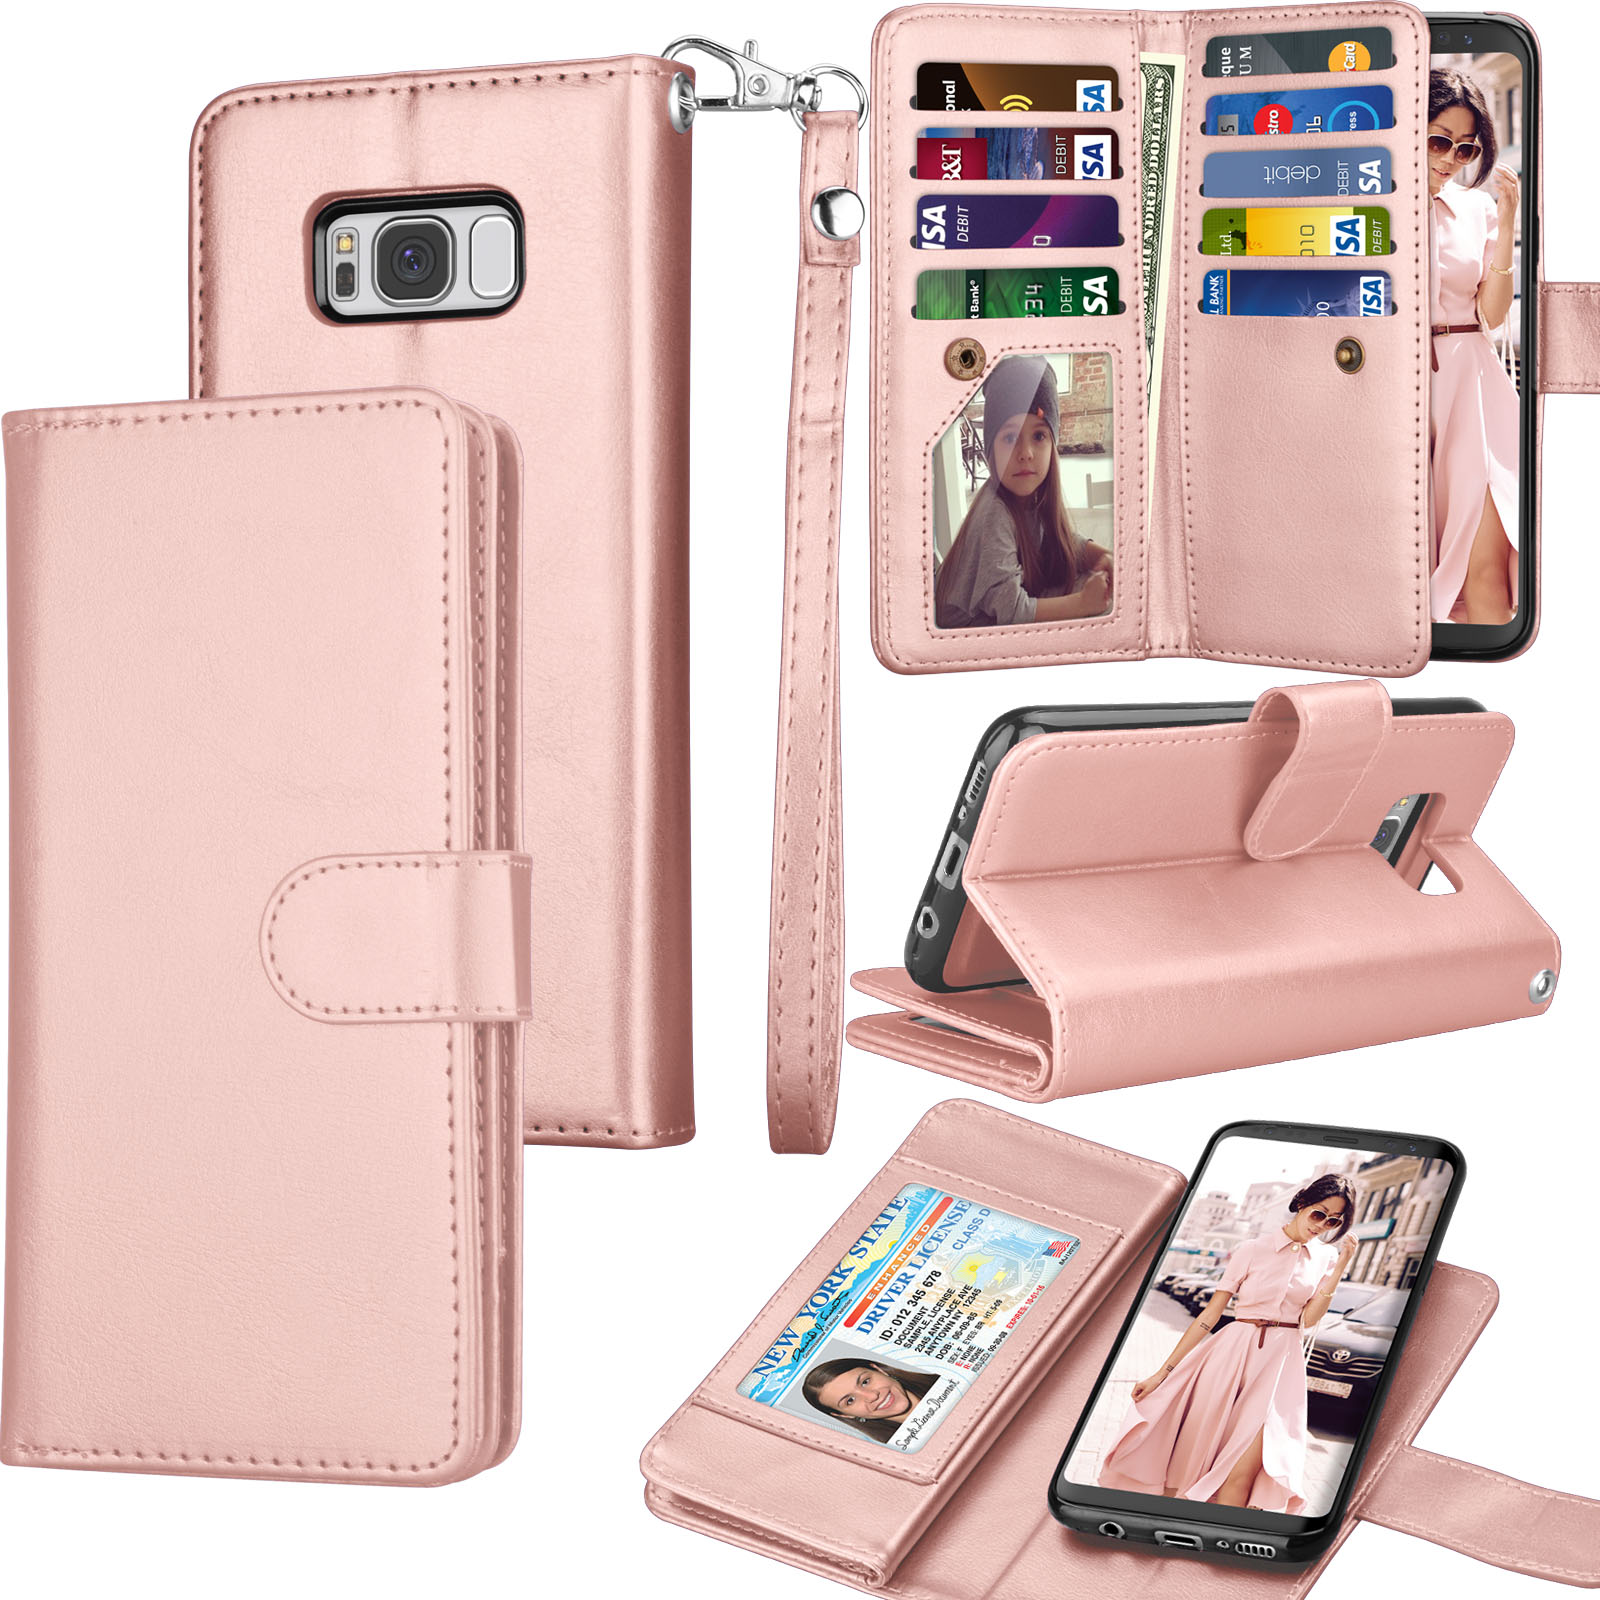 Flip Case for Samsung Galaxy S8 Plus Leather Cover Business Gifts Wallet with Extra Waterproof Underwater Case